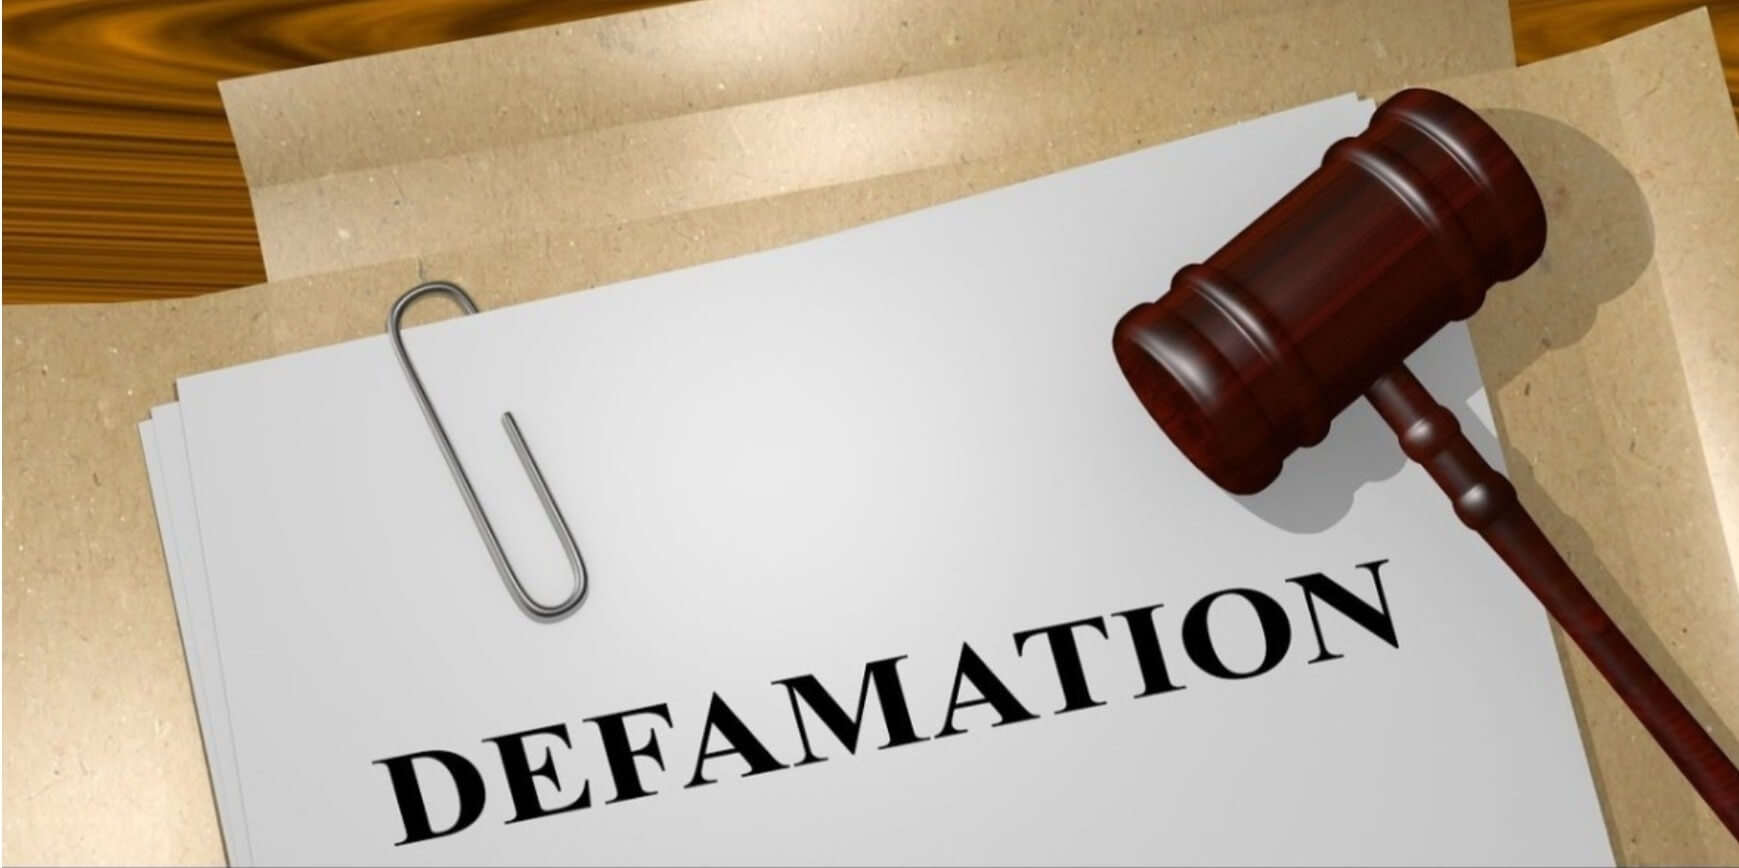 Injunctions, defamation suits emerge as new weapons against authors, publishers